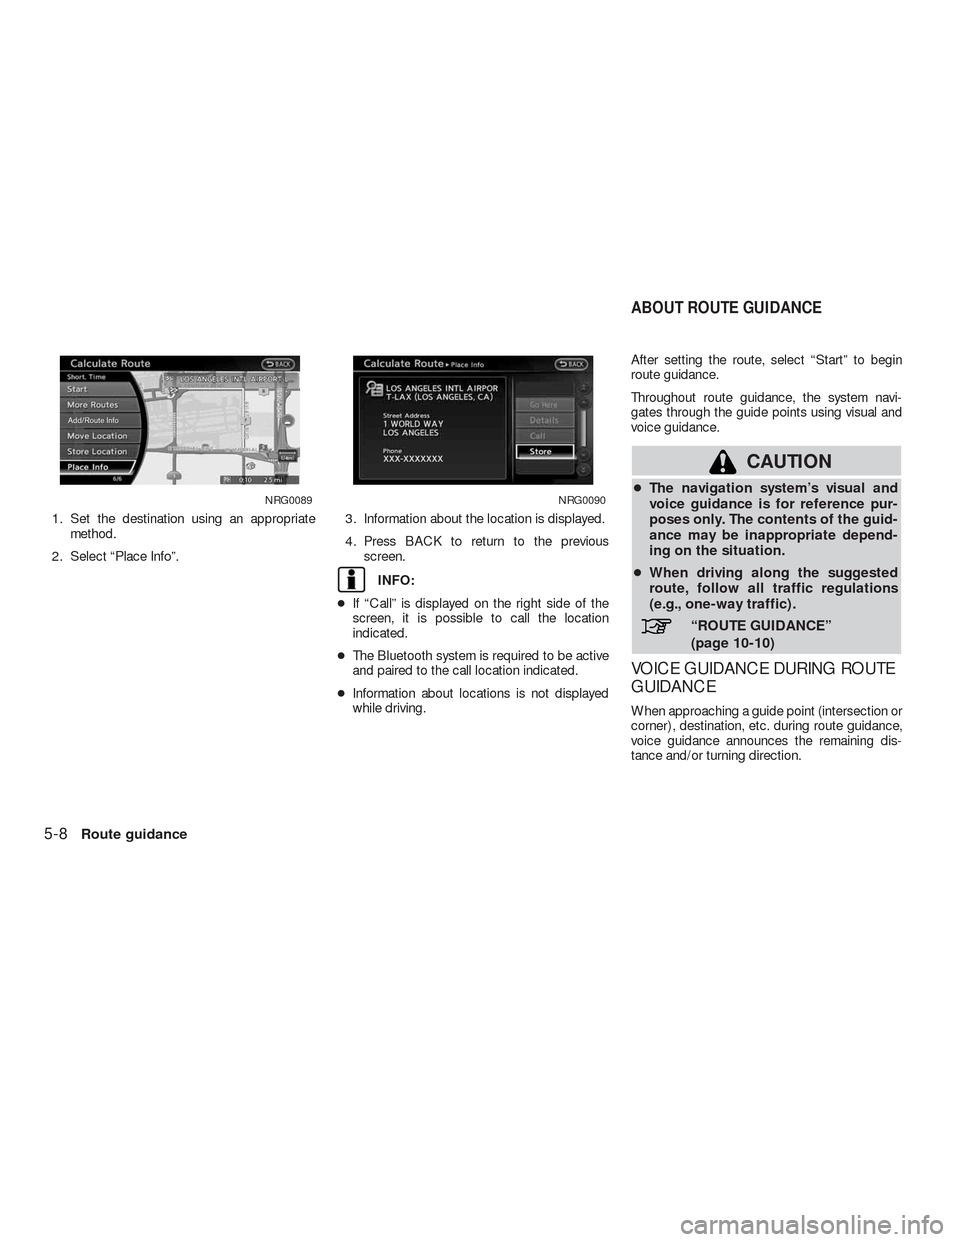 NISSAN ALTIMA HYBRID 2010 L32A / 4.G Navigation Manual, Page 113